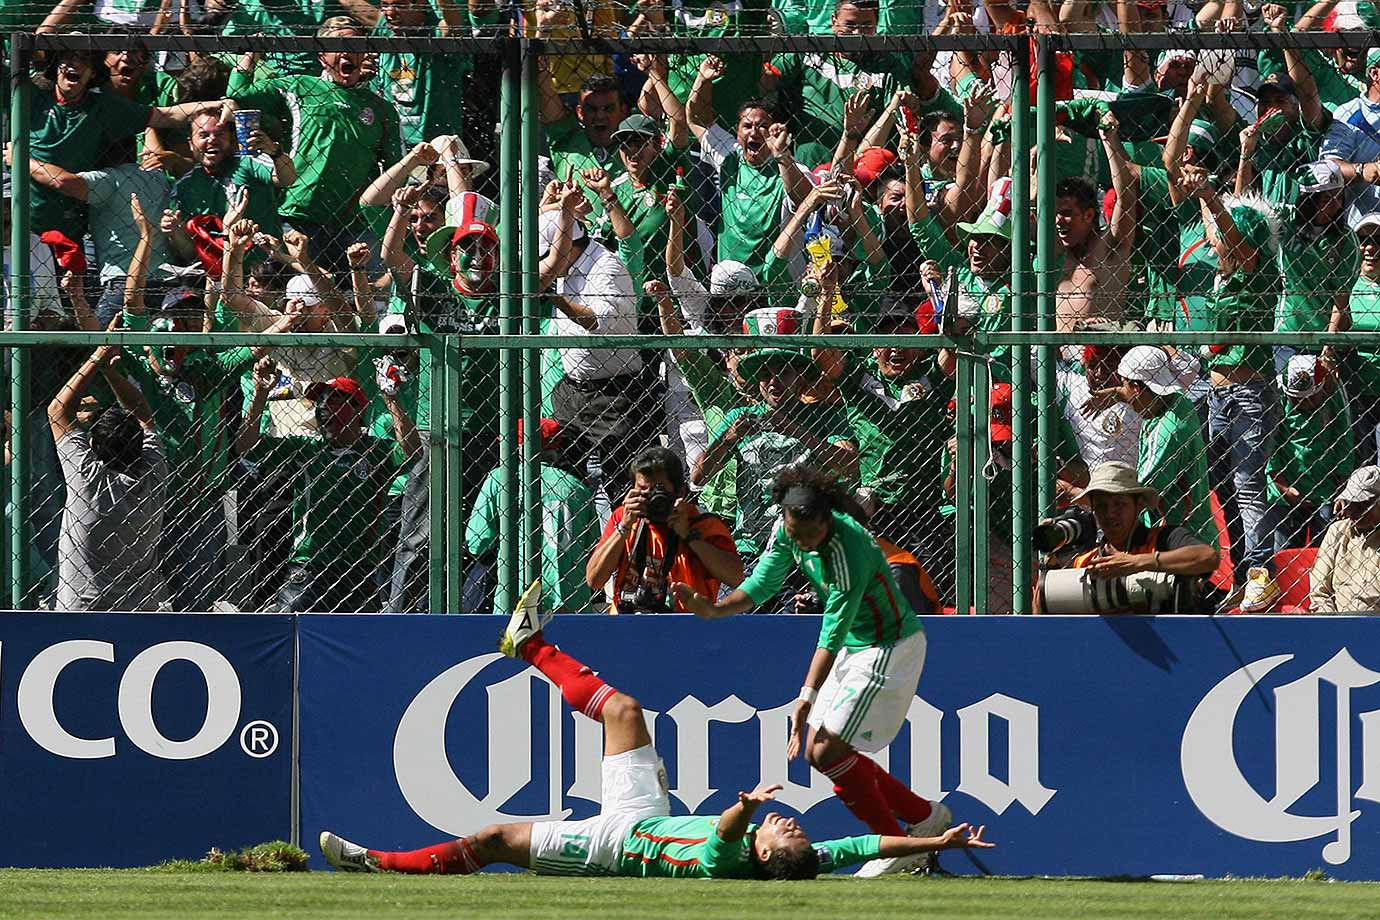 The U.S. took its first-ever lead at Azteca Stadium, but went on to lose 2-1 in what was a critical World Cup qualifier for Mexico. The win changed the tide for the then-struggling Mexican squad, as it went on to go 3-0-1 in its next four matches to earn a trip to South Africa. The U.S. still went on to finish first in CONCACAF qualification.